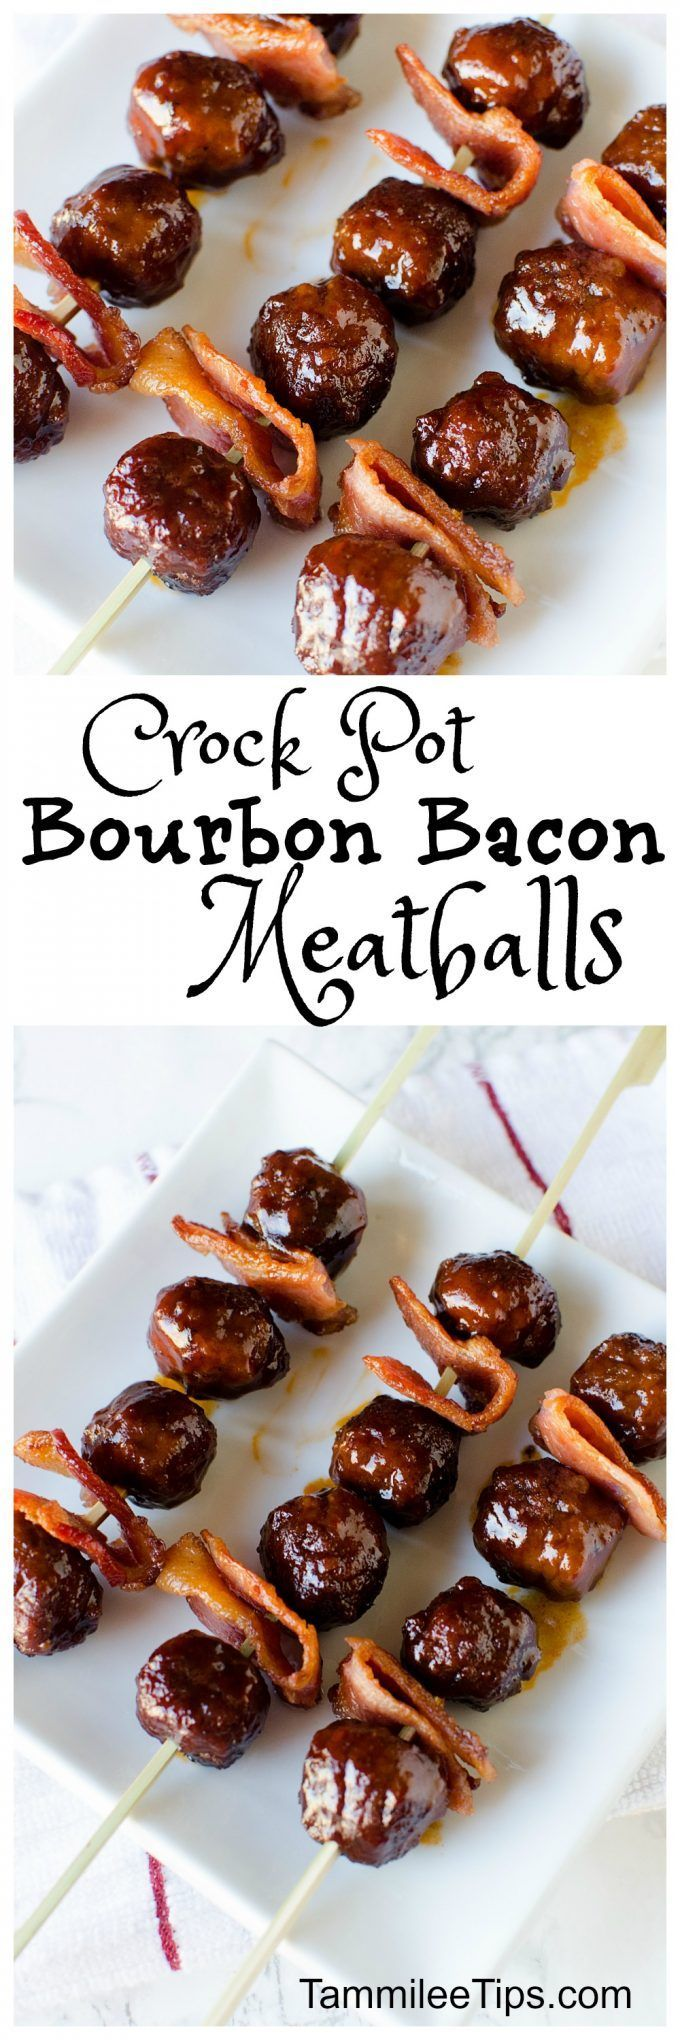 Super easy crock pot bourbon bacon meatballs are the perfect Super Bowl appetizer recipe! This slow cooker appetizer would be perfect for New Years Eve also! The crockpot does all the work and you get to serve an amazing appetizer!  via @tammileetips